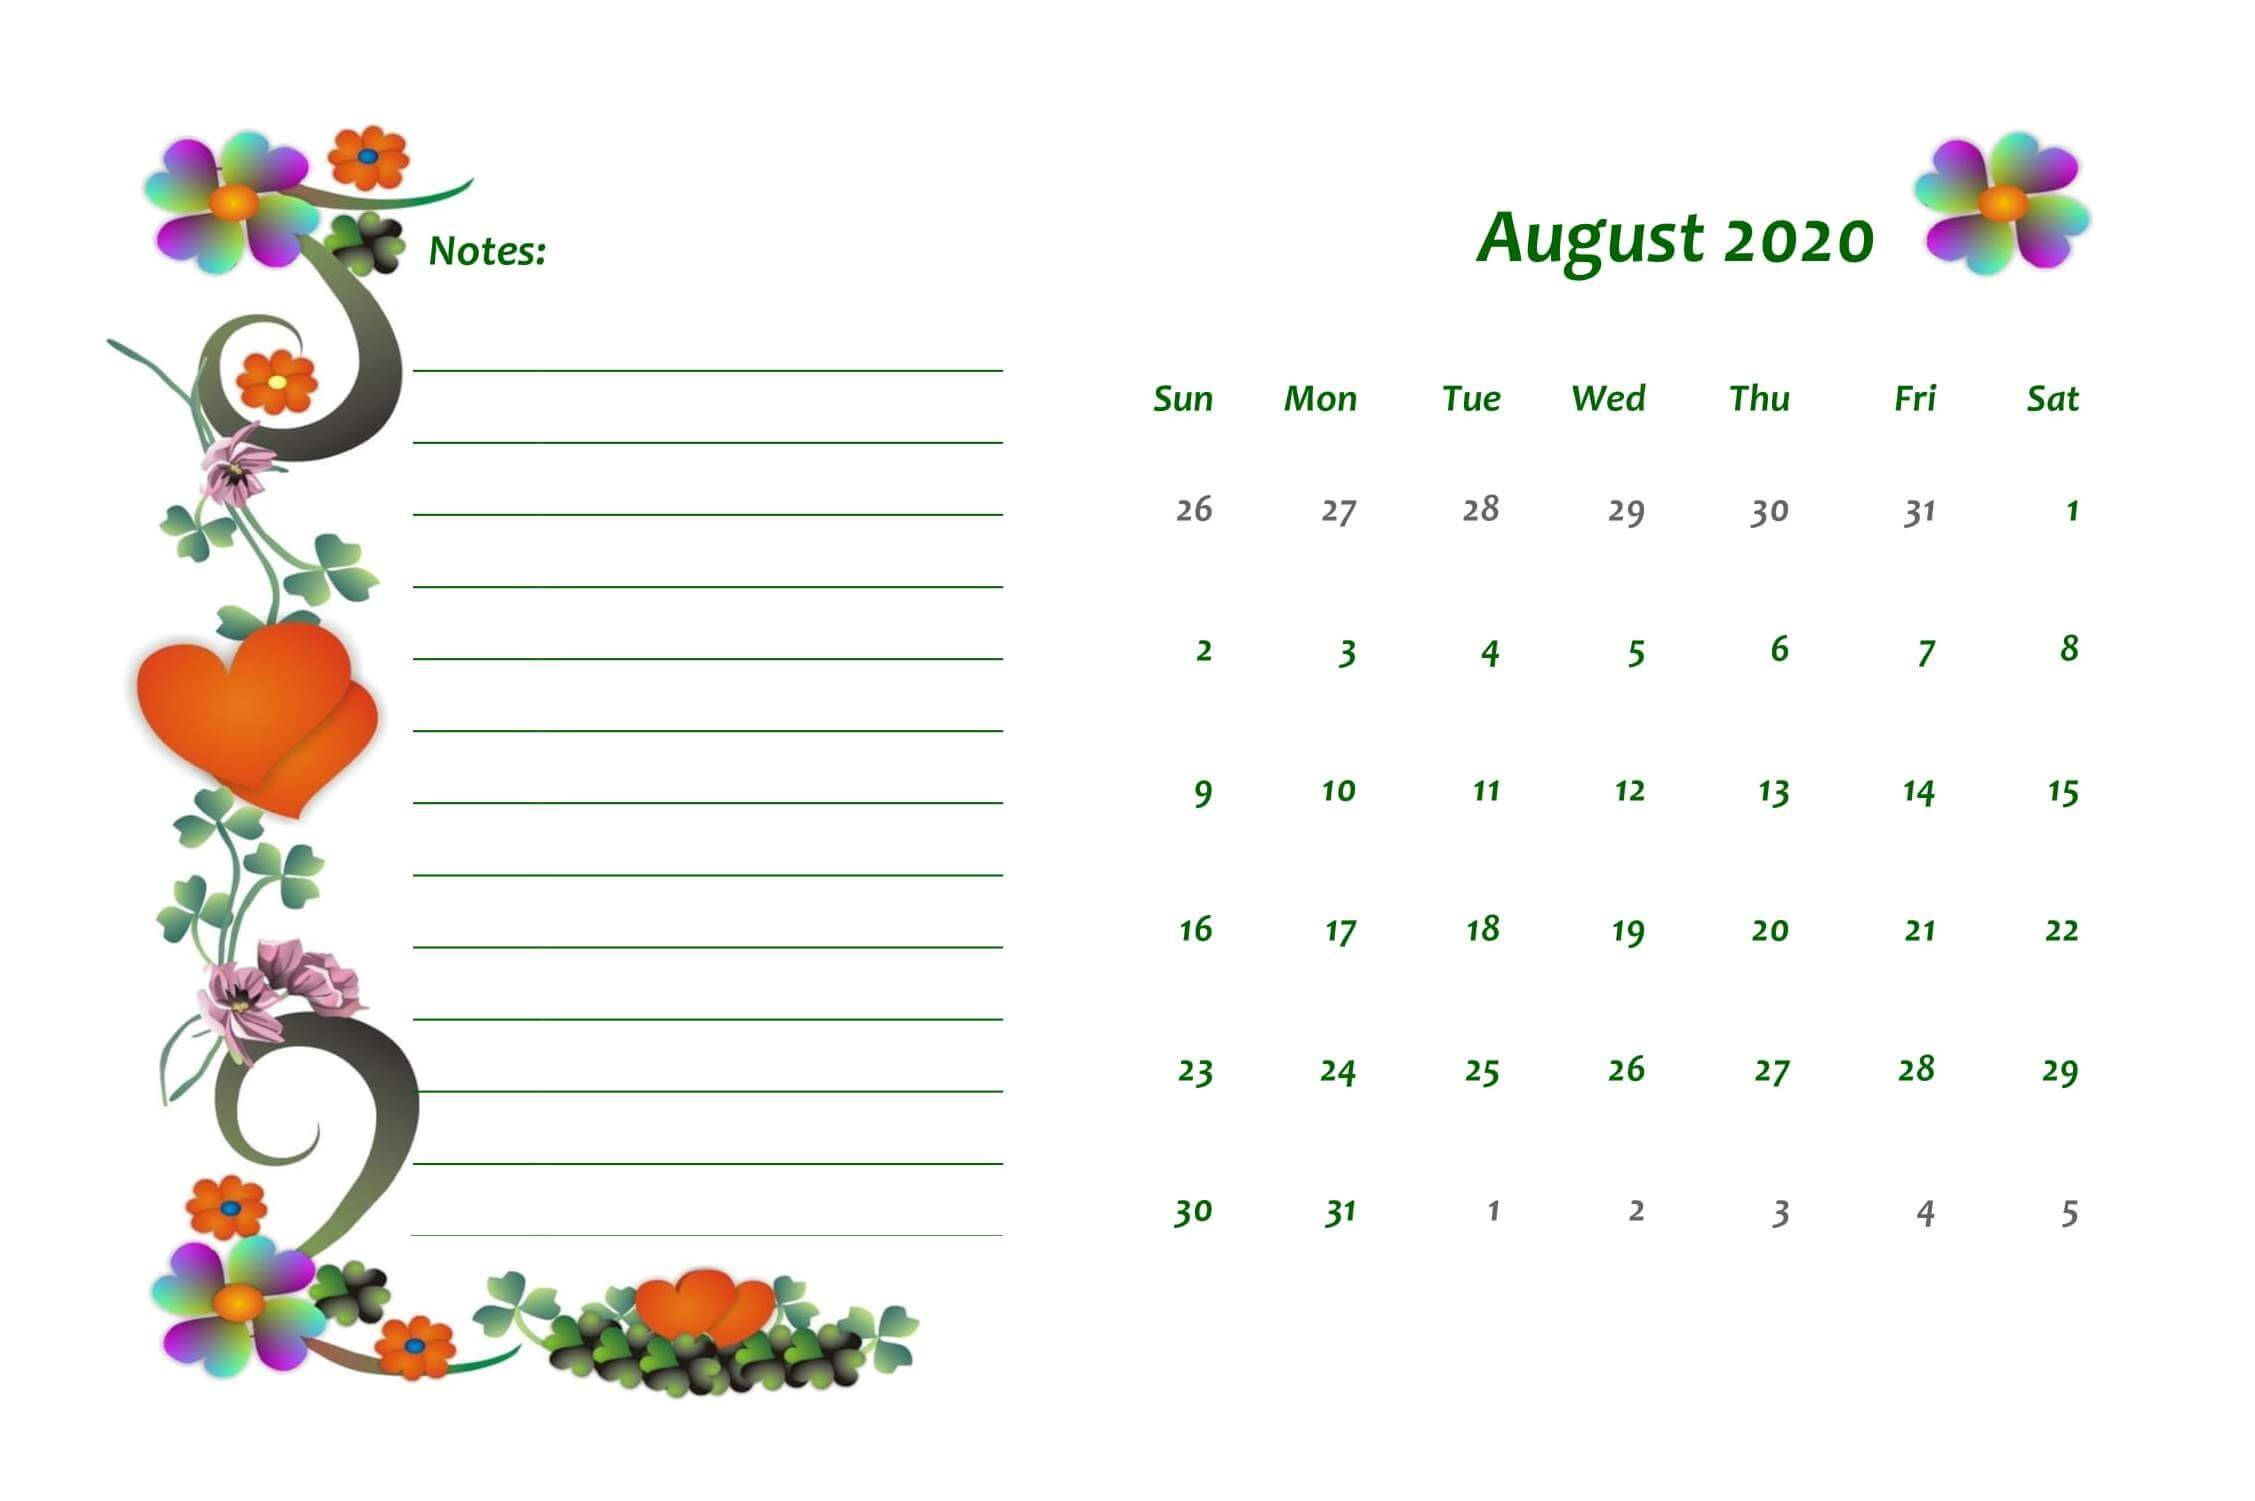 Calendar 2020 August With Notes